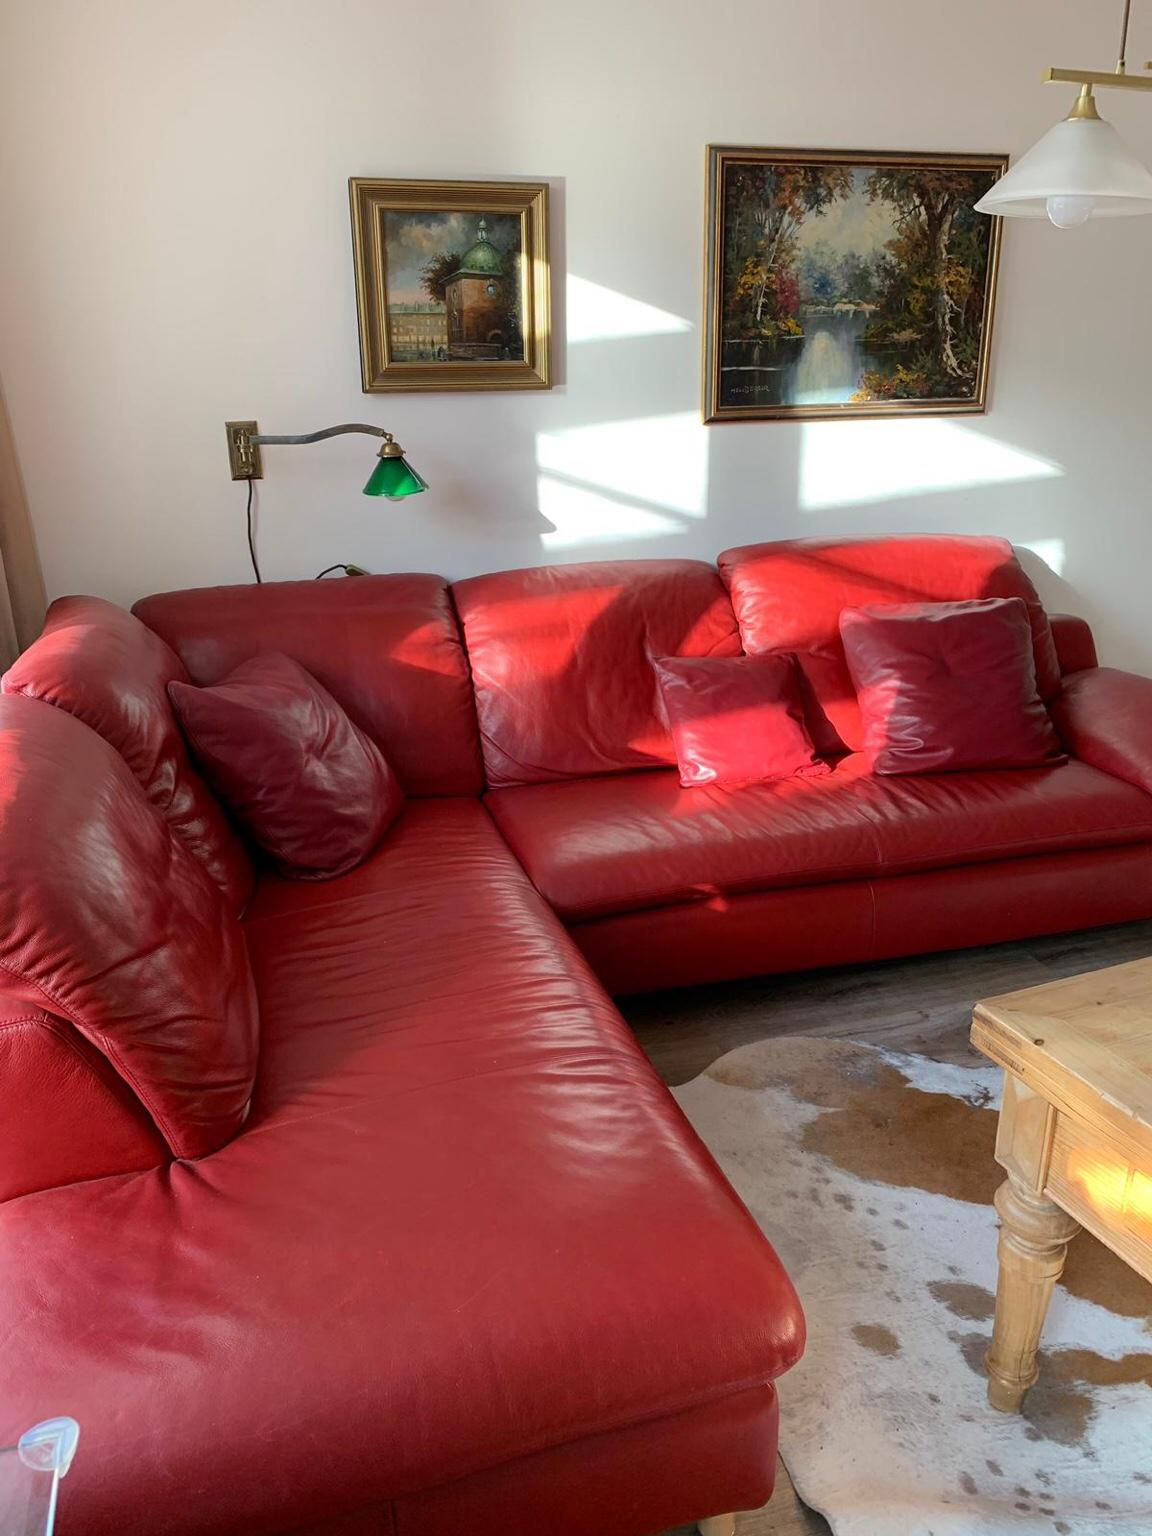 Couch Sofa In 21073 Eißendorf For 1 500 00 For Sale Shpock